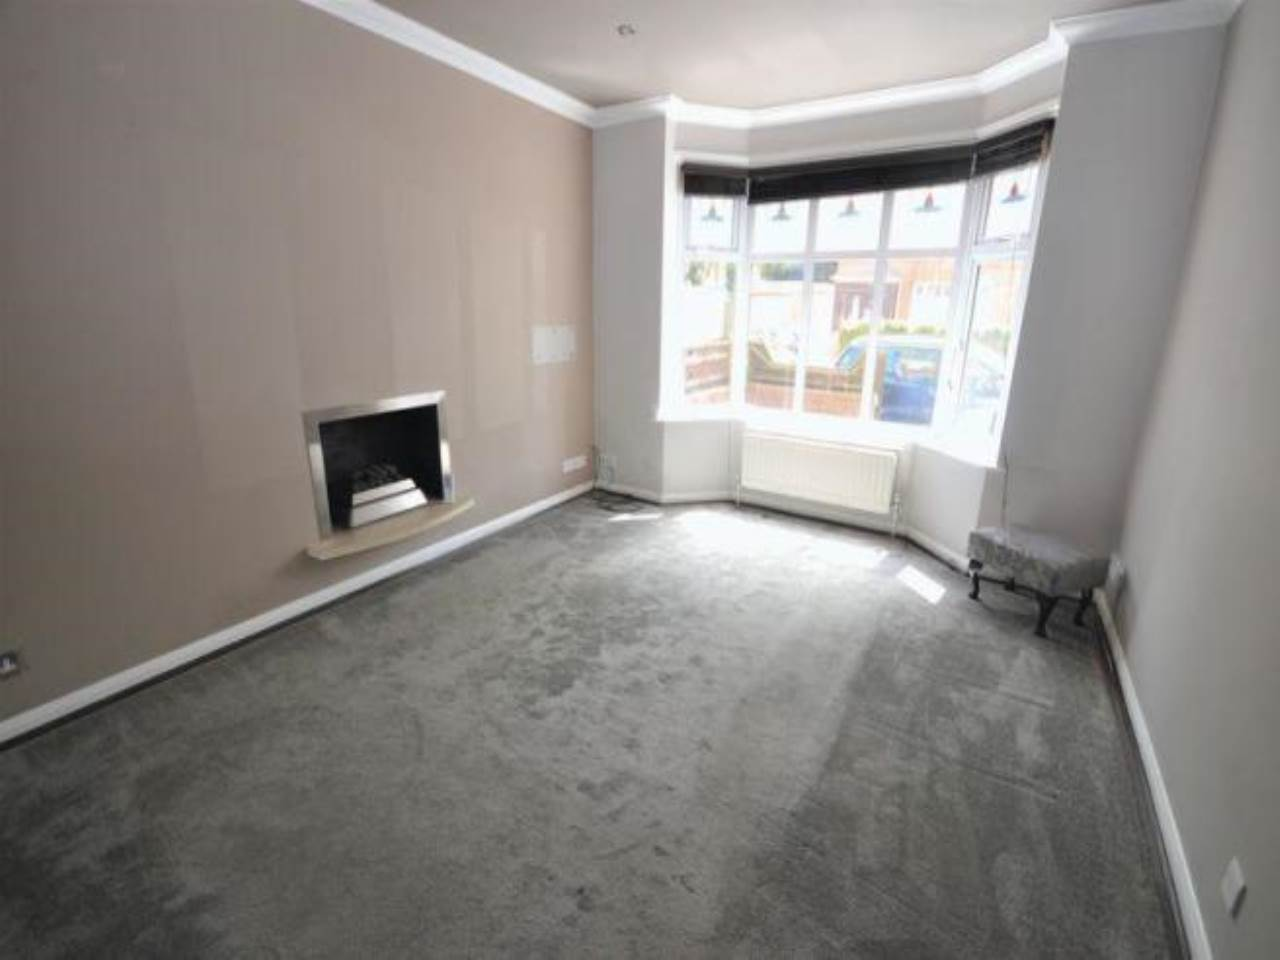 4 bed house for sale in Cowper Road, Moordown 6